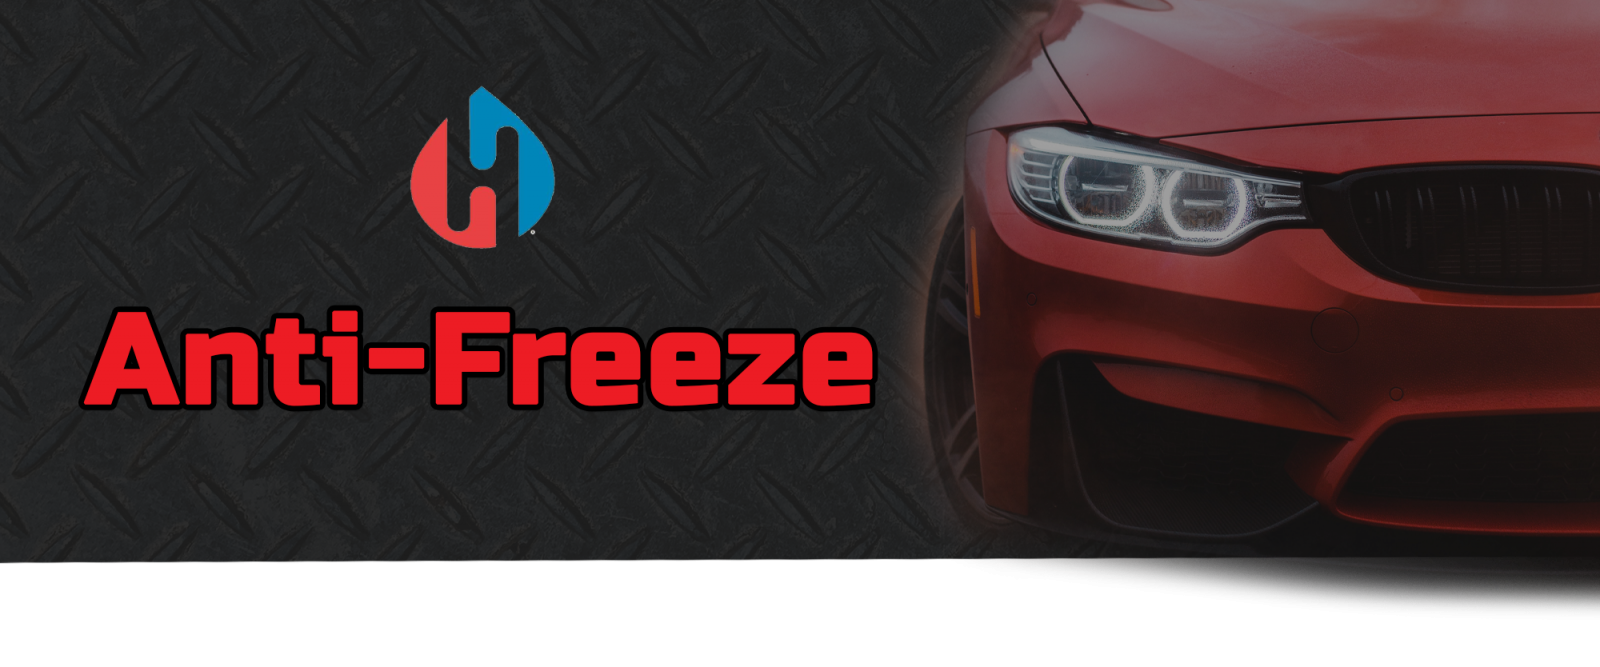 antifreeze banner copy scaled